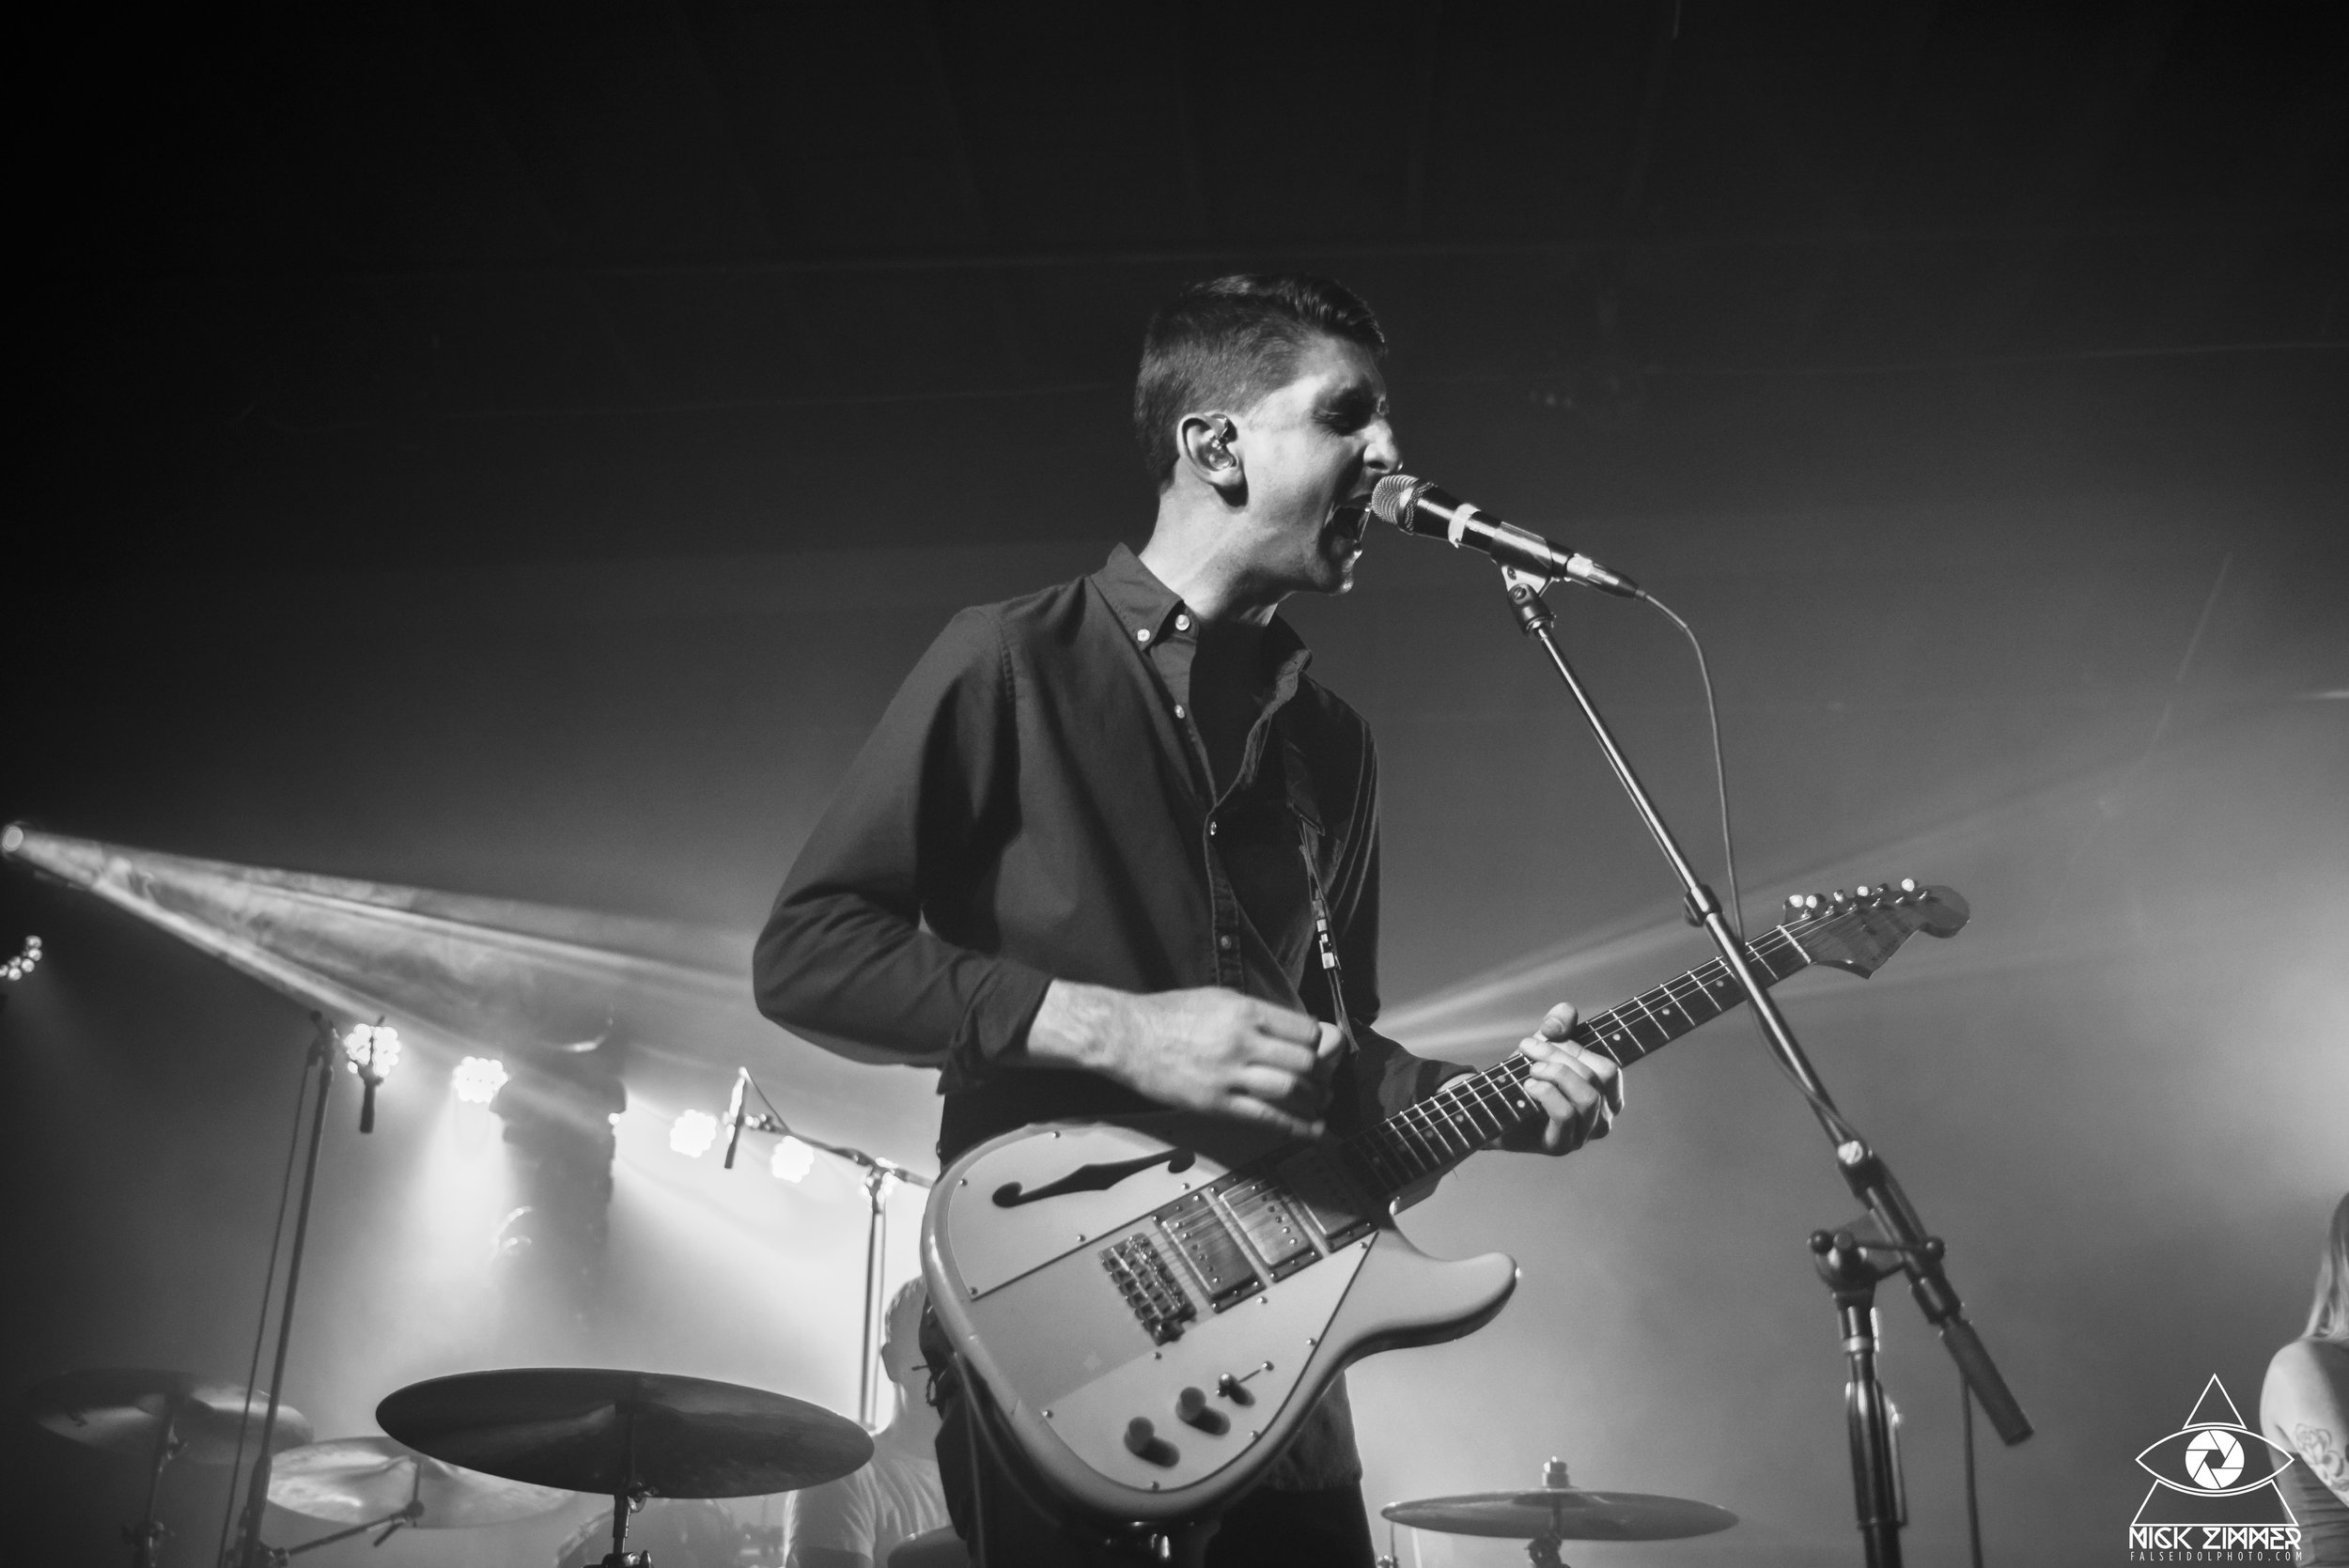 tigersjaw.oftpb (3 of 5).jpg